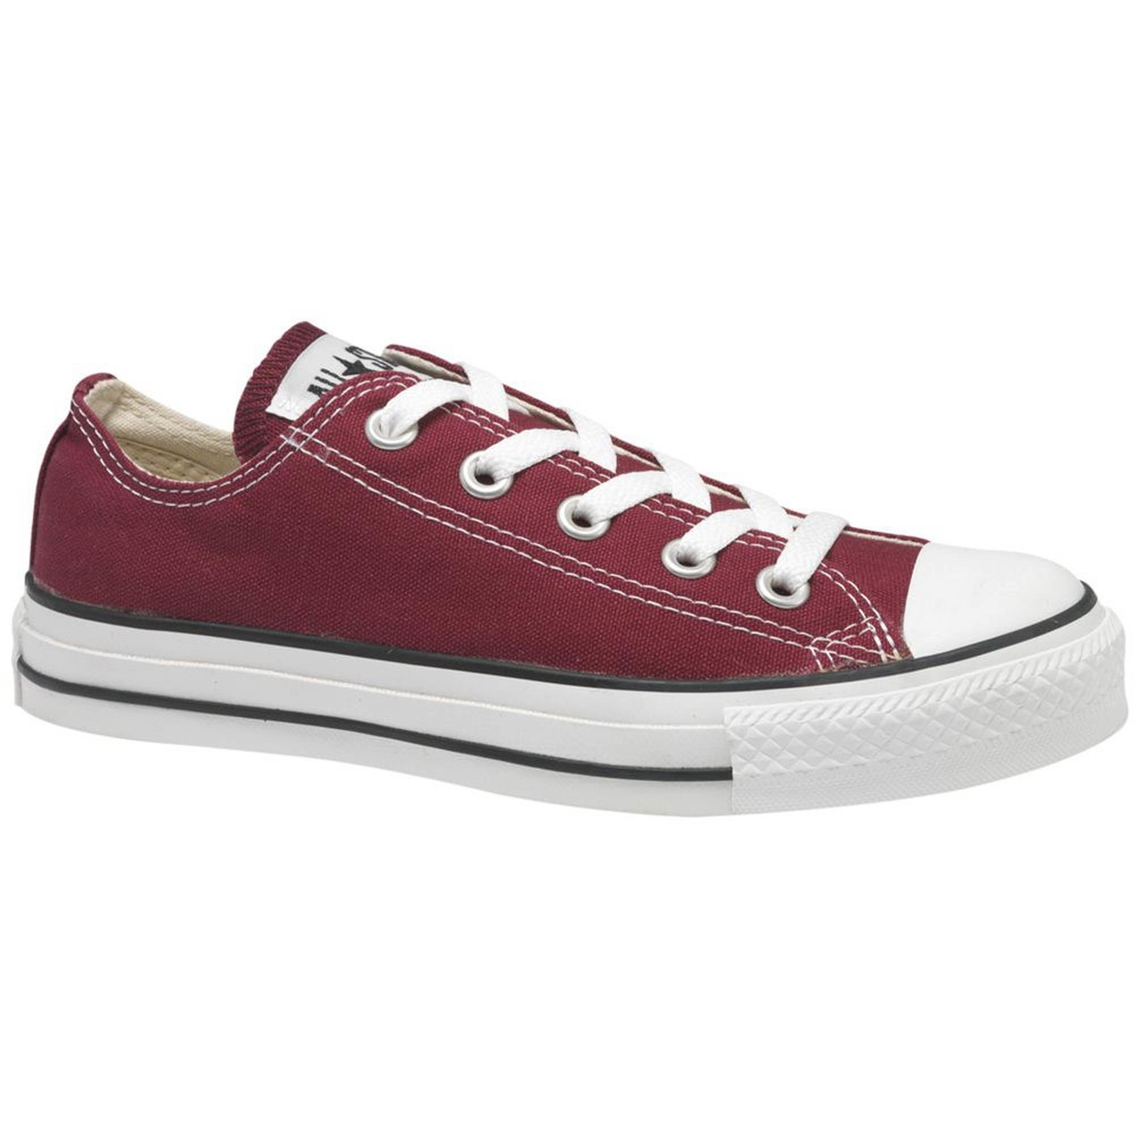 e5086ac7f9b9 Converse Chuck Taylor All Star Ox Maroon Shoes